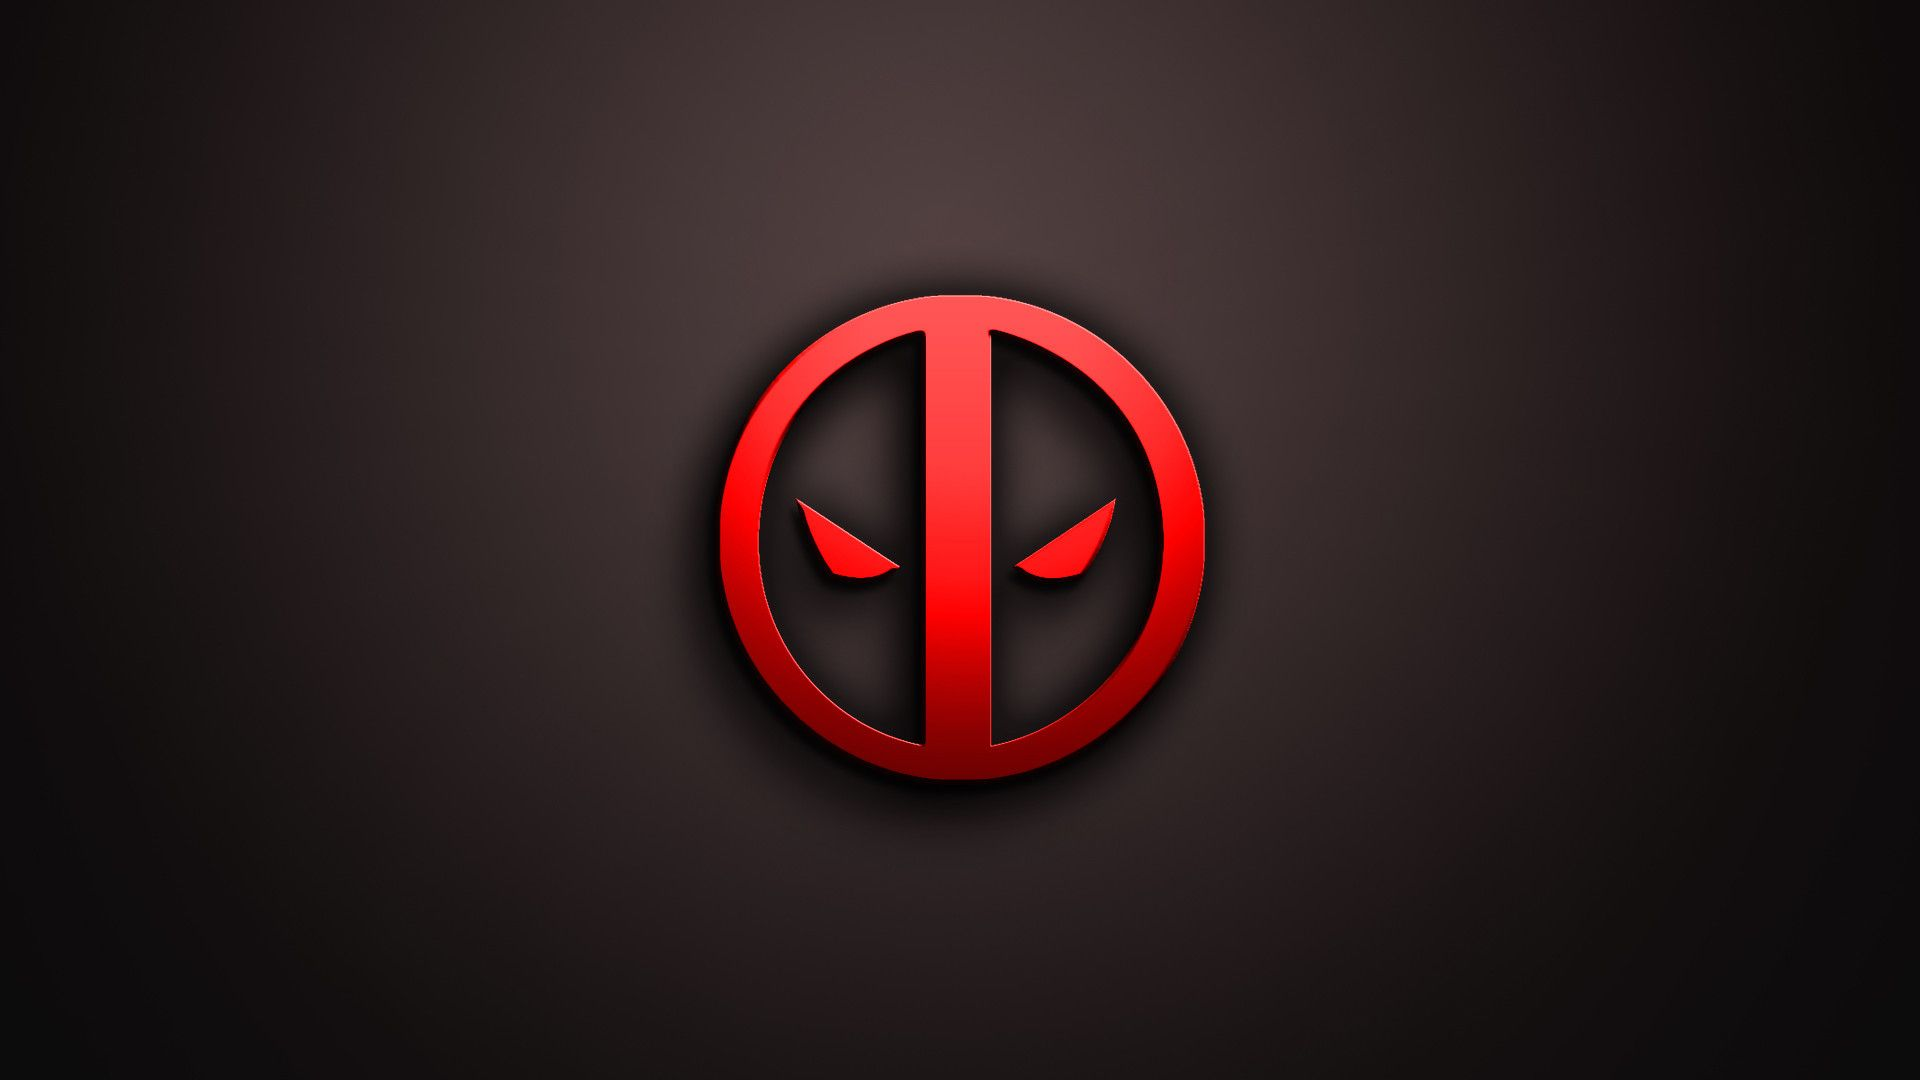 Deadpool Logo Wallpapers Top Free Deadpool Logo Backgrounds